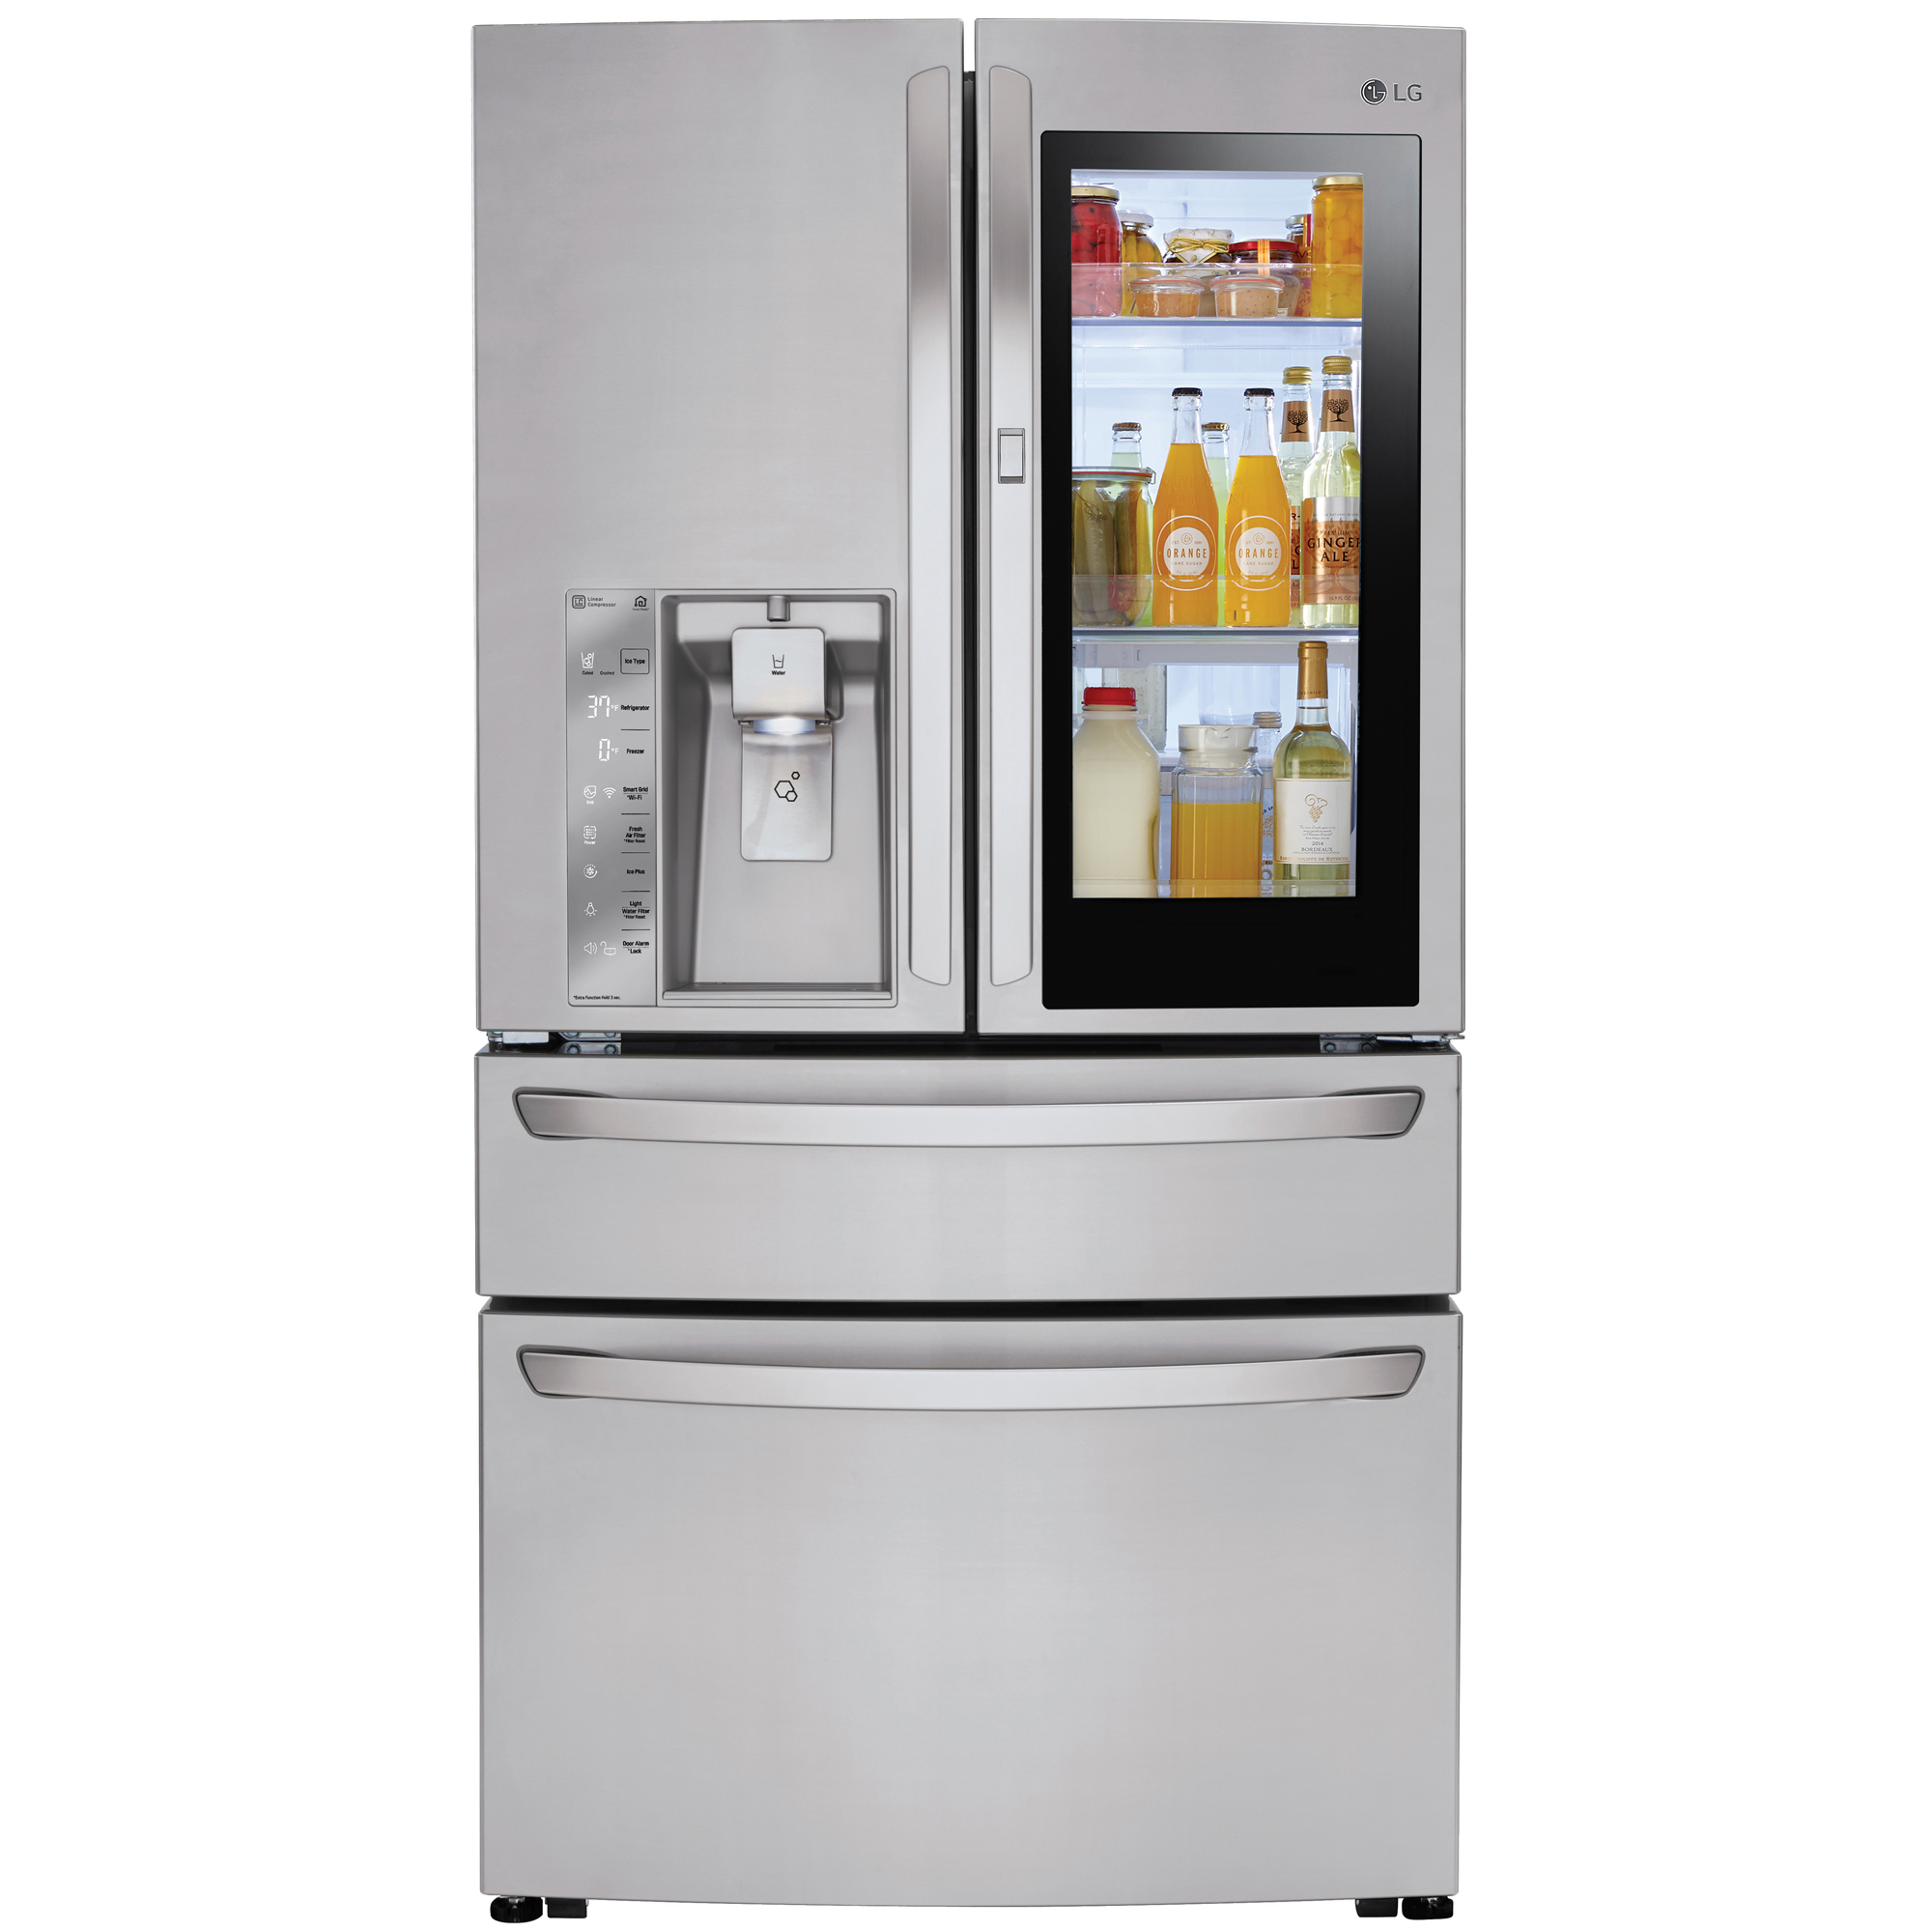 Kuche Bar Fridge Review Lg Lmxs30796s Smart Wi Fi Enabled 4 Door Instaview Door